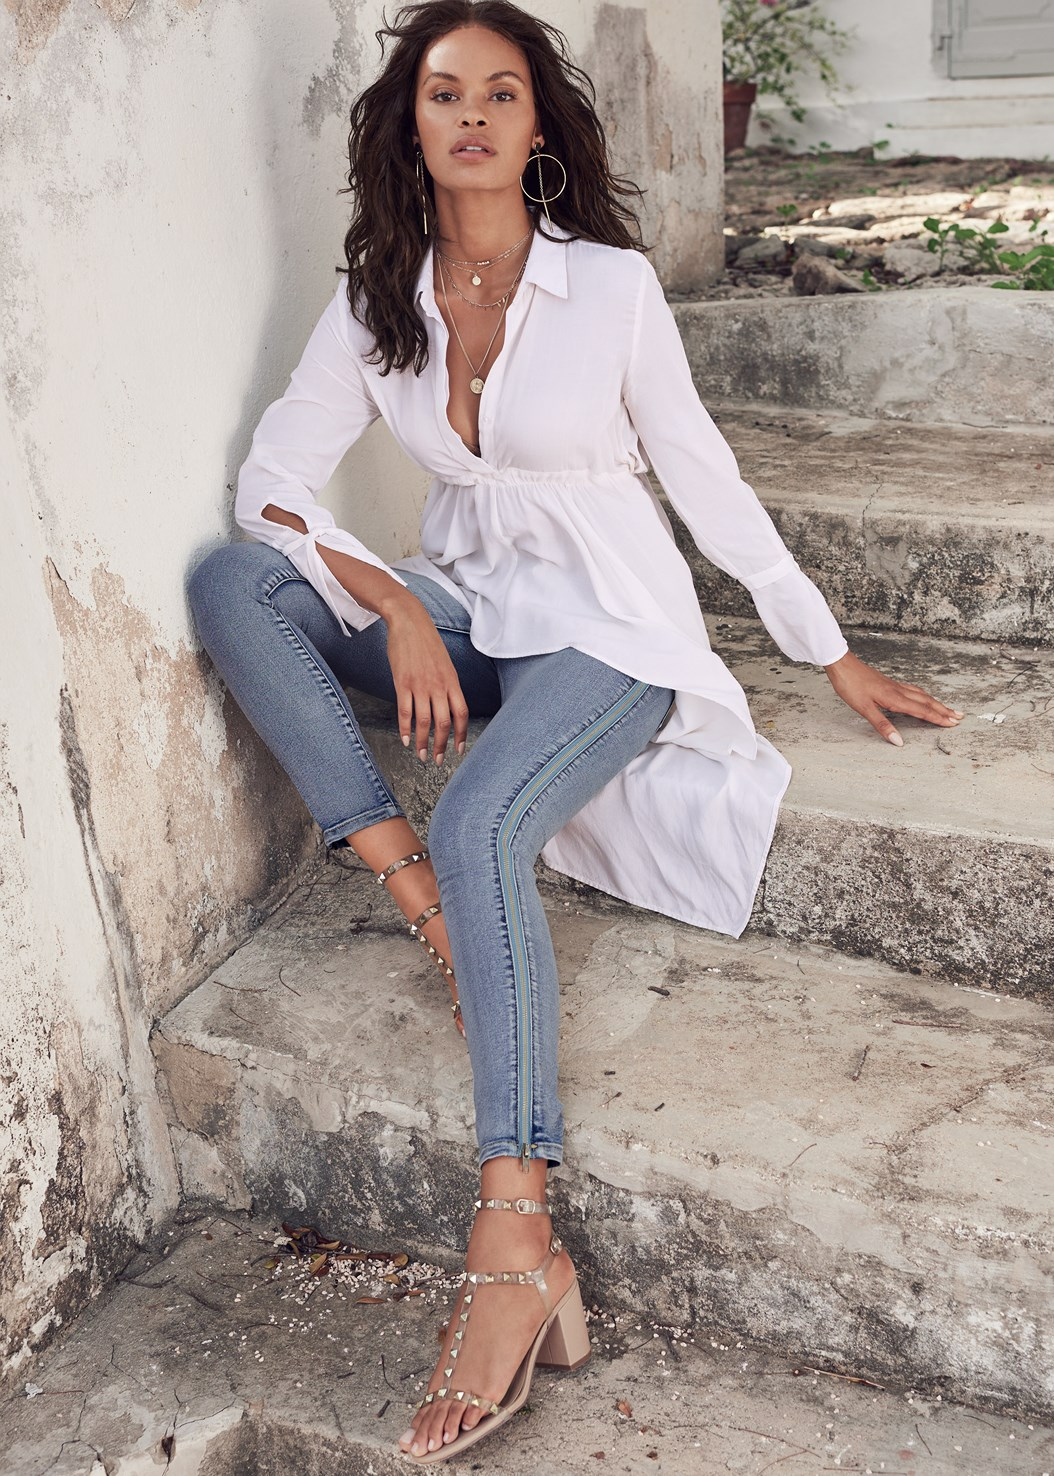 High Low Blouse,Side Zipper Jeans,Mid Rise Color Skinny Jeans,Naked T-Shirt Bra,Transparent Studded Heels,Lucite Detail Print Heels,Circular Straw Bag